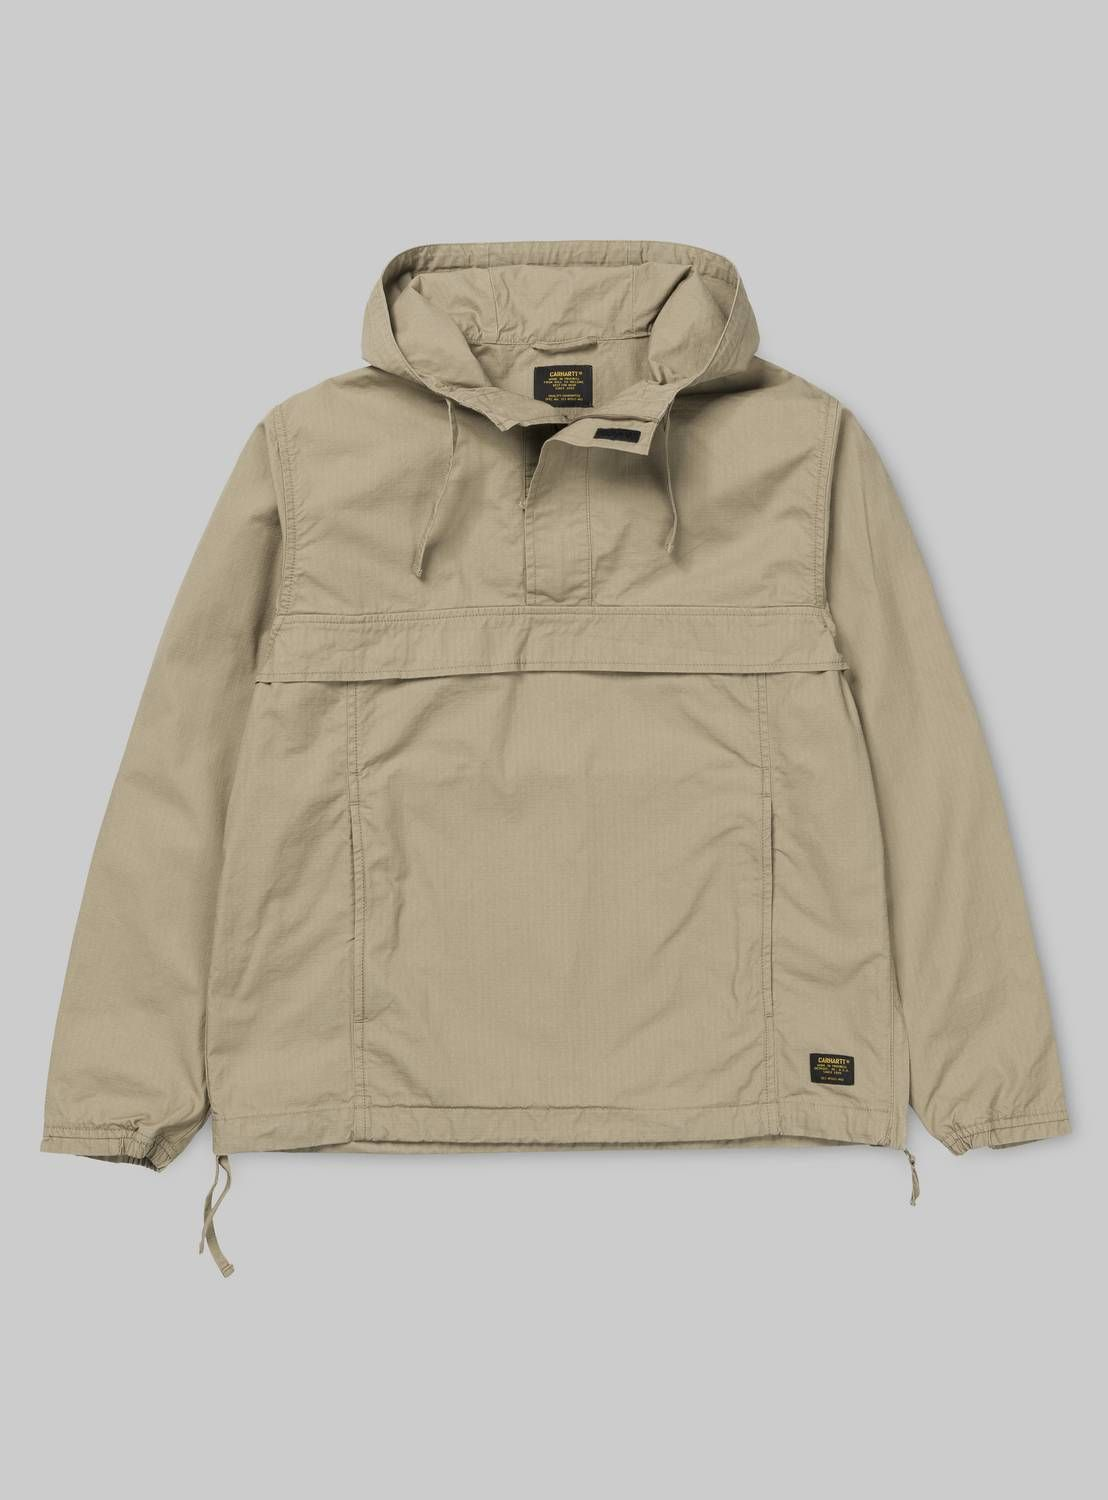 ab3c9652 Shop the Carhartt WIP Vega Pullover from the offical online store. |  Largest selection